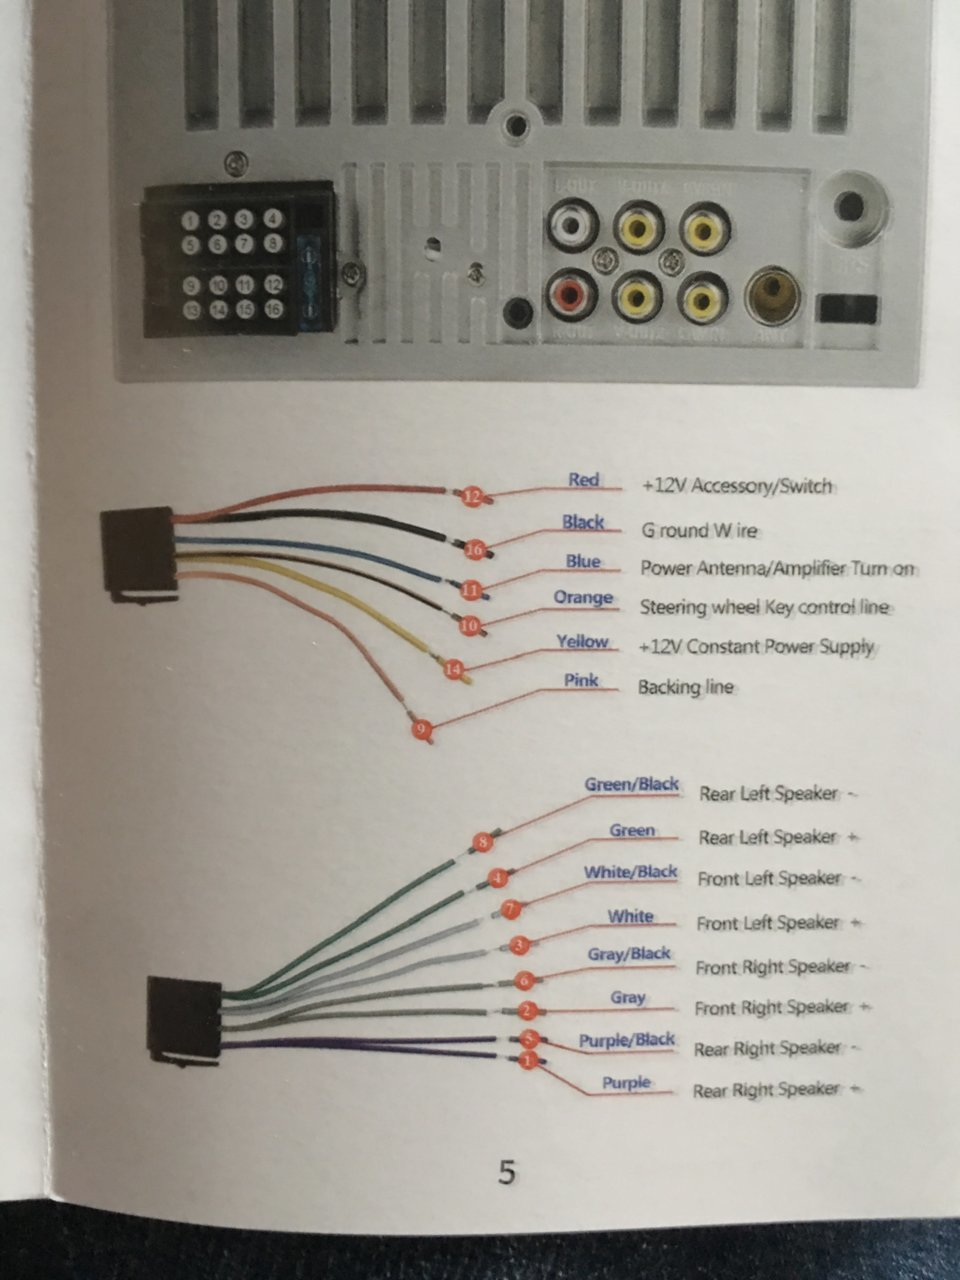 need 2008 stereo wiring diagram tacoma world 4 wire trailer wiring diagram troubleshooting repair guides